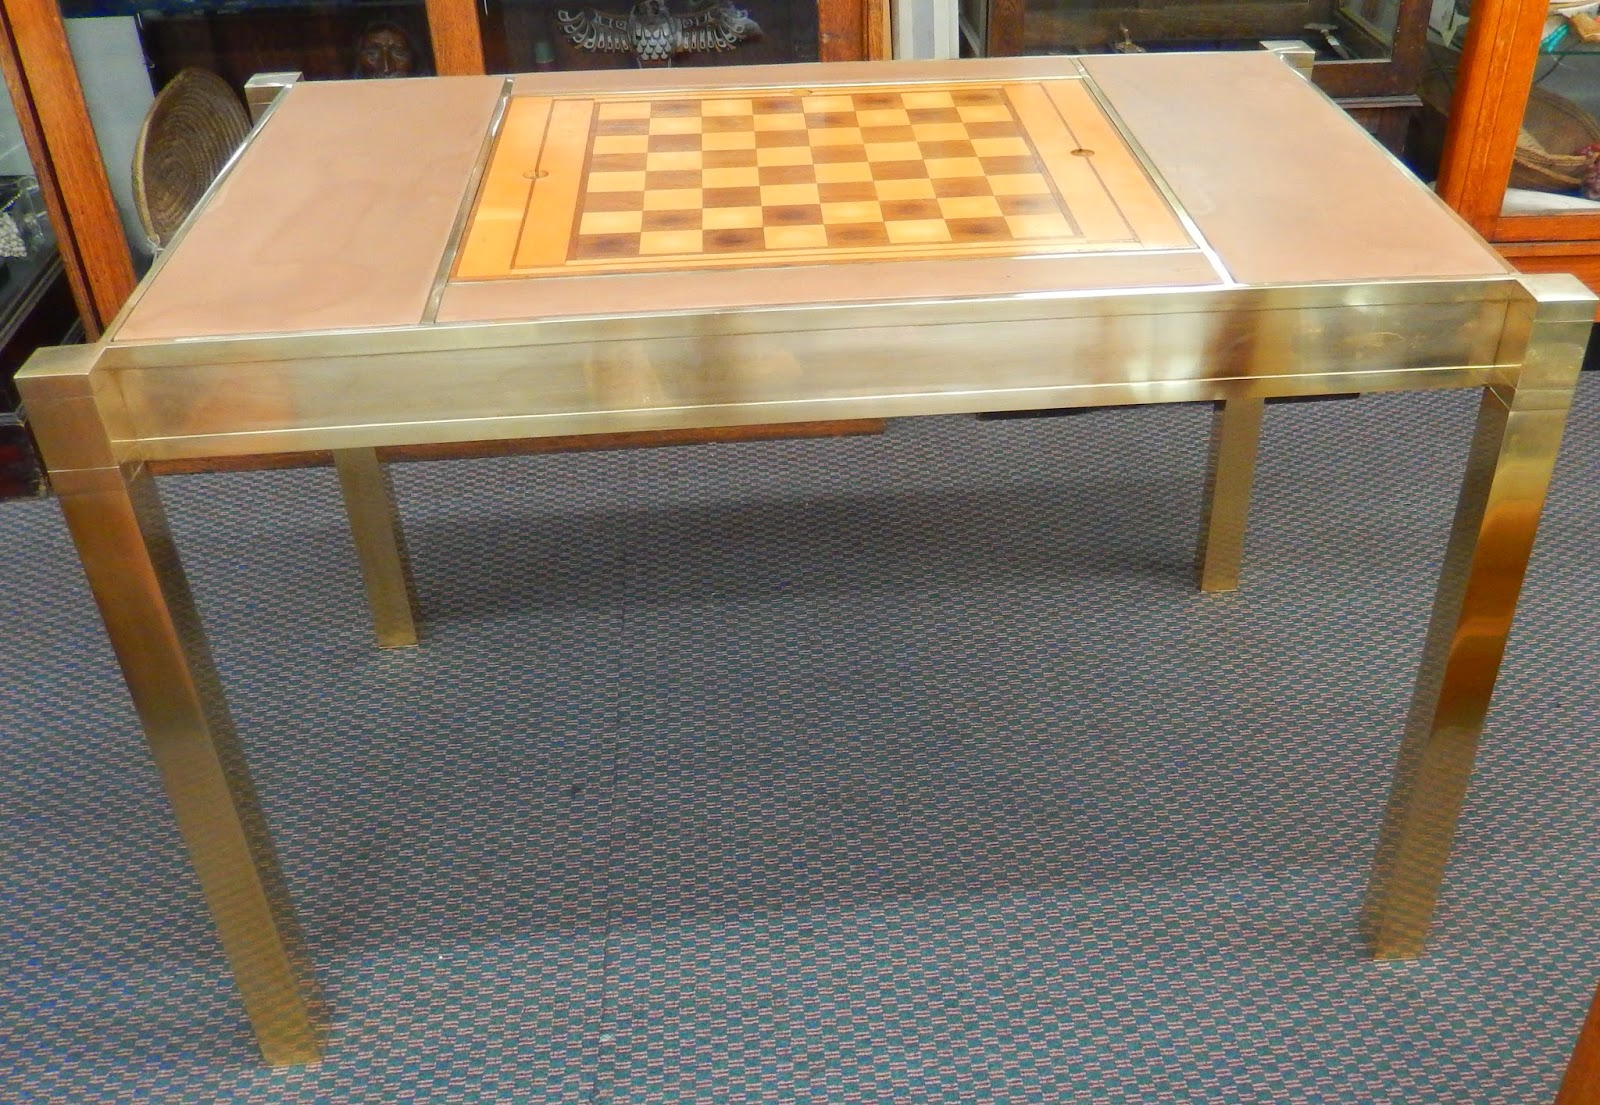 Vintage Modern Brass Game Table With Checker/Chess Board And Inset  Backgammon Board... SOLD!!!